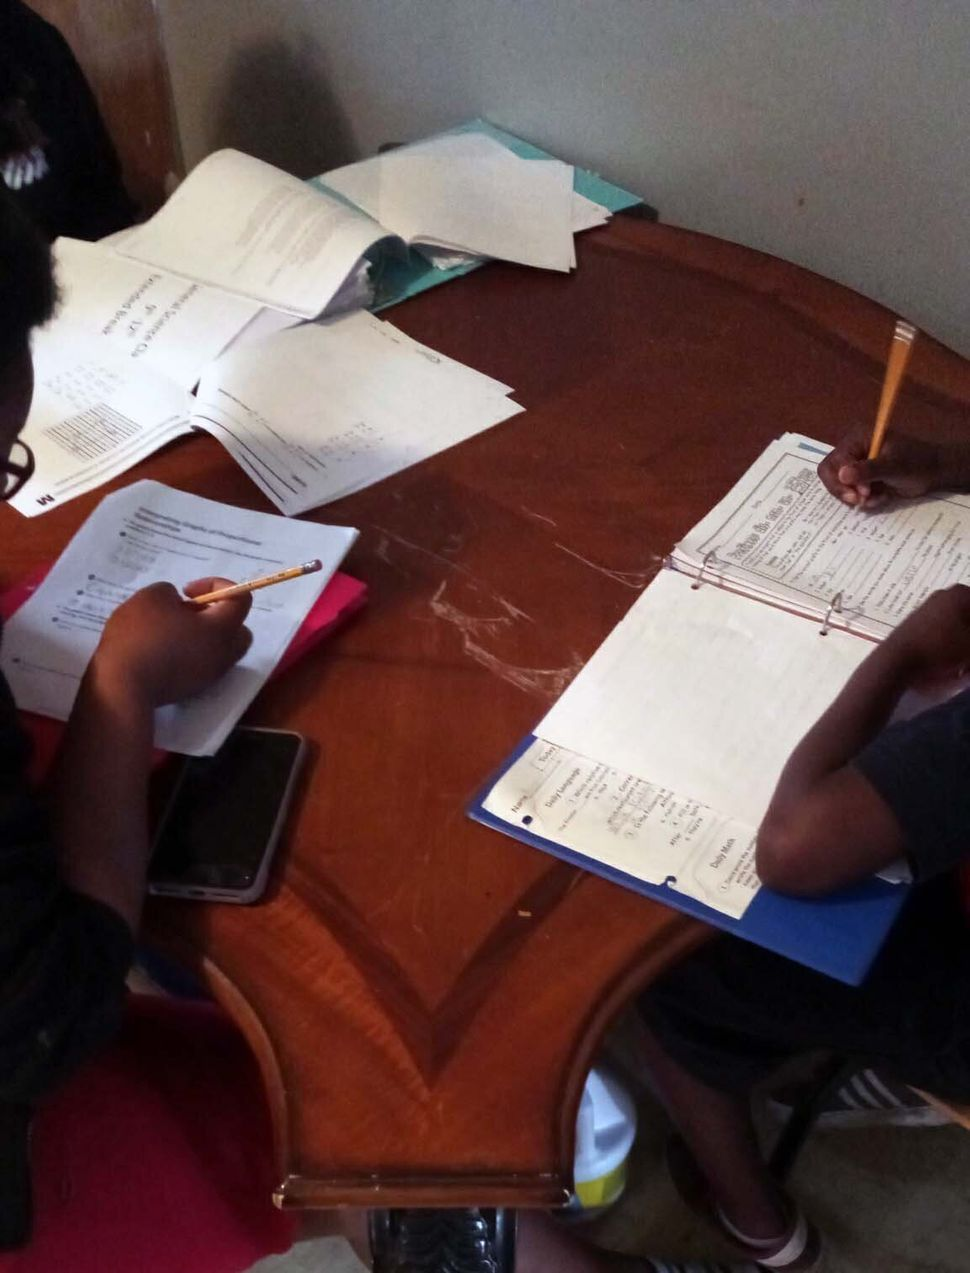 Amareon, right, and his sister Jakayla work on assignments picked up from their local school district. Their family does not